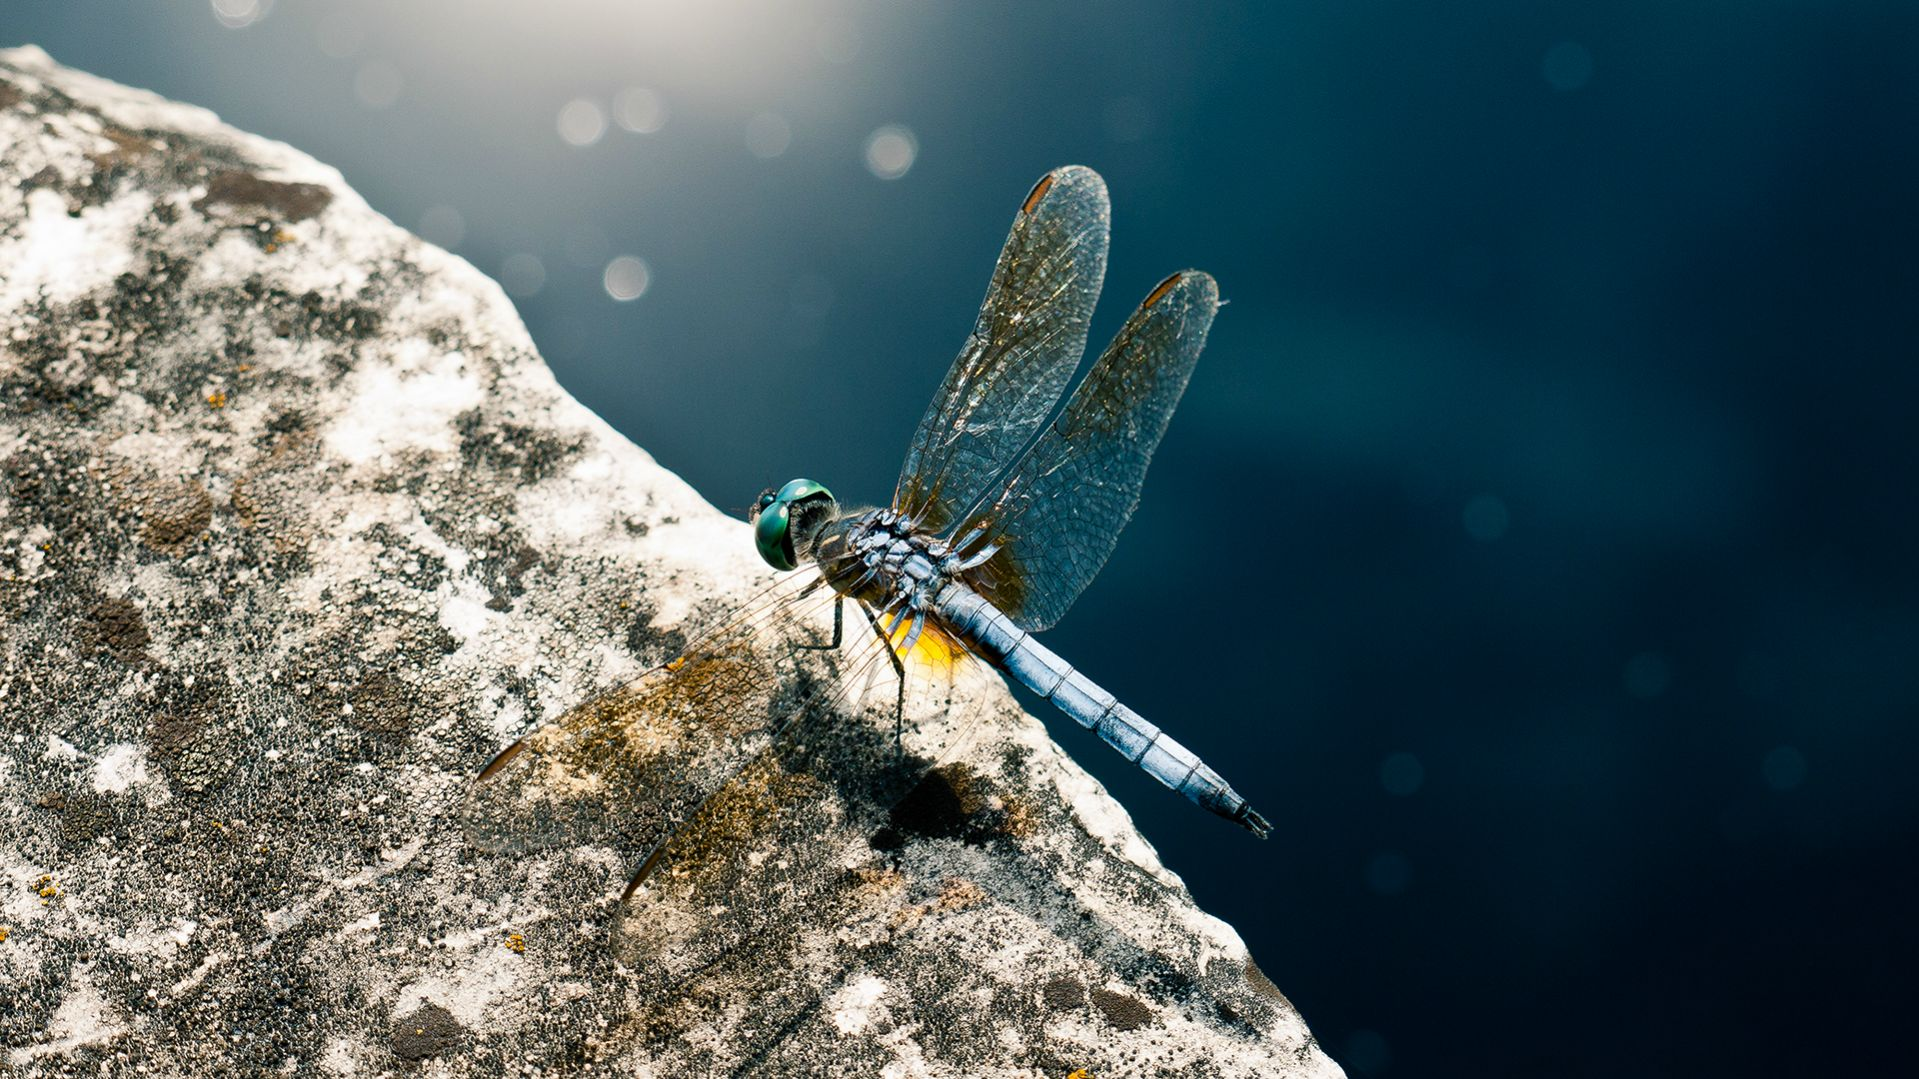 Download High quality dragonfly pauses Insects wallpaper / 1919x1079